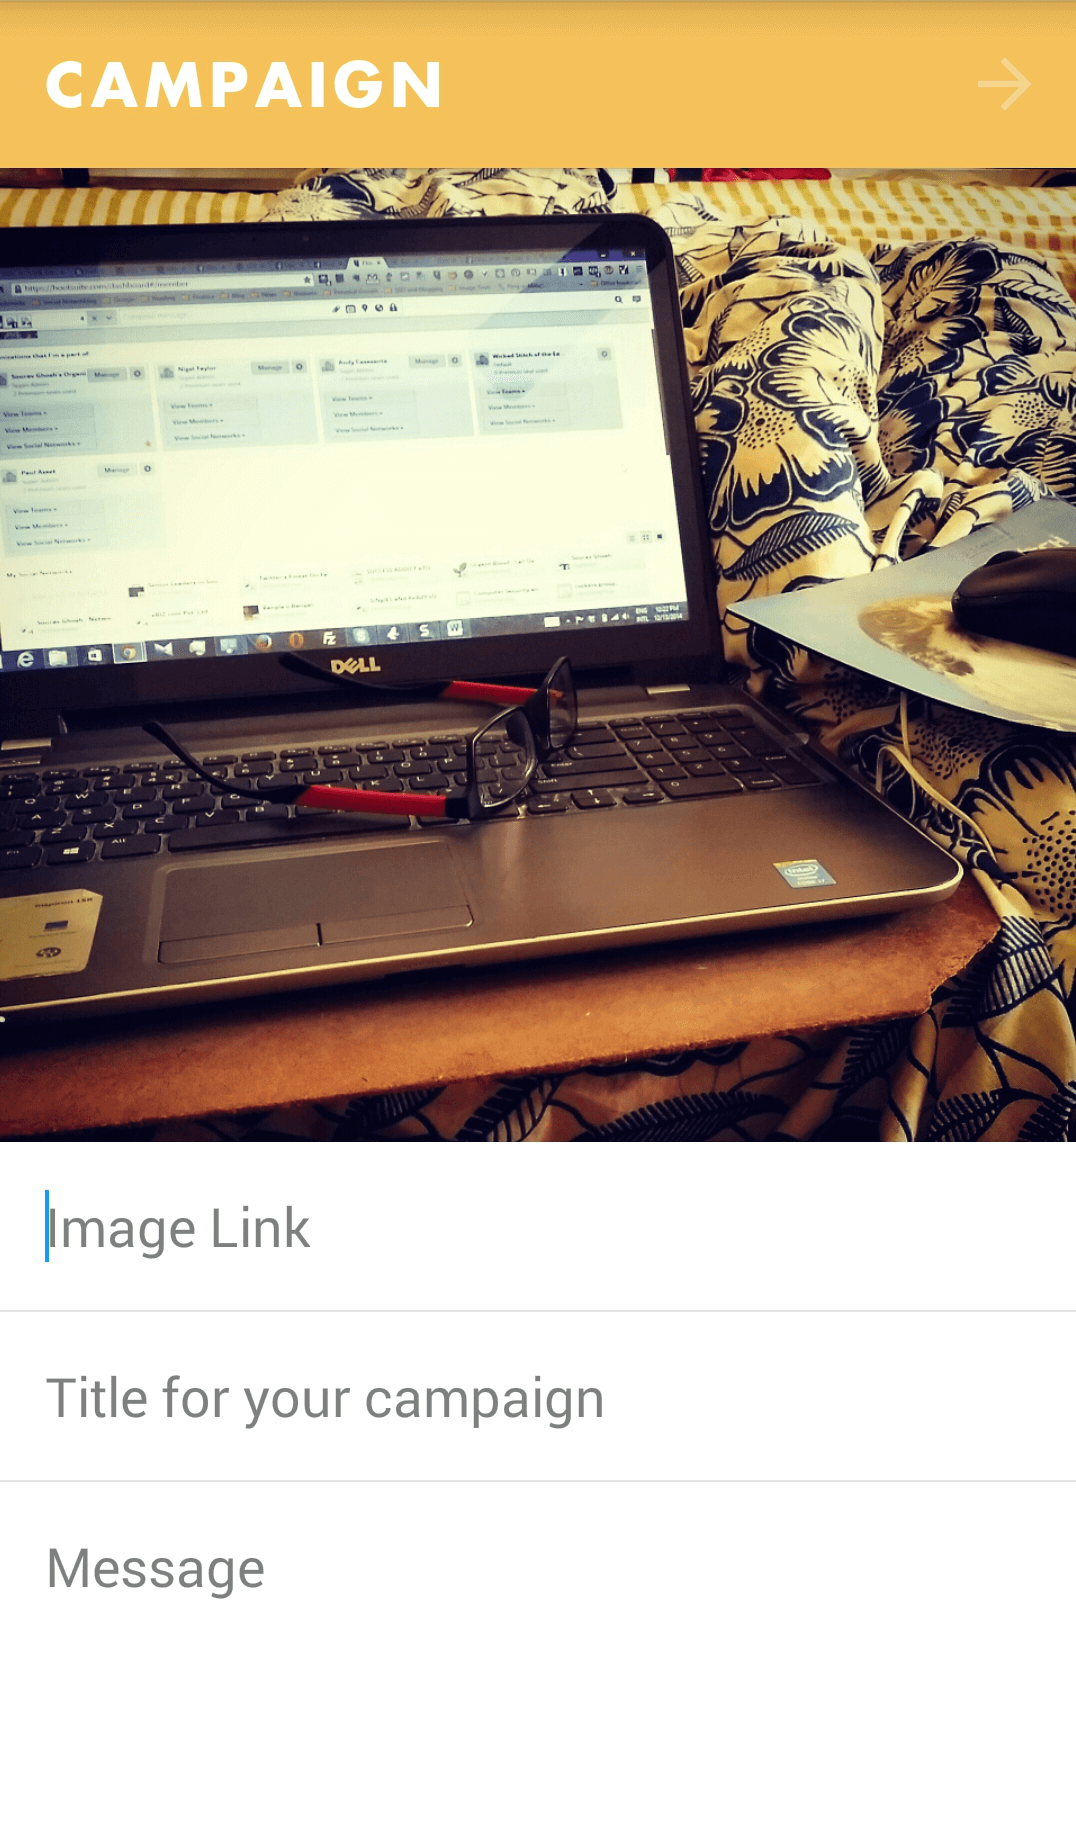 How to use Mailchimp Snap - Step by Step Guide